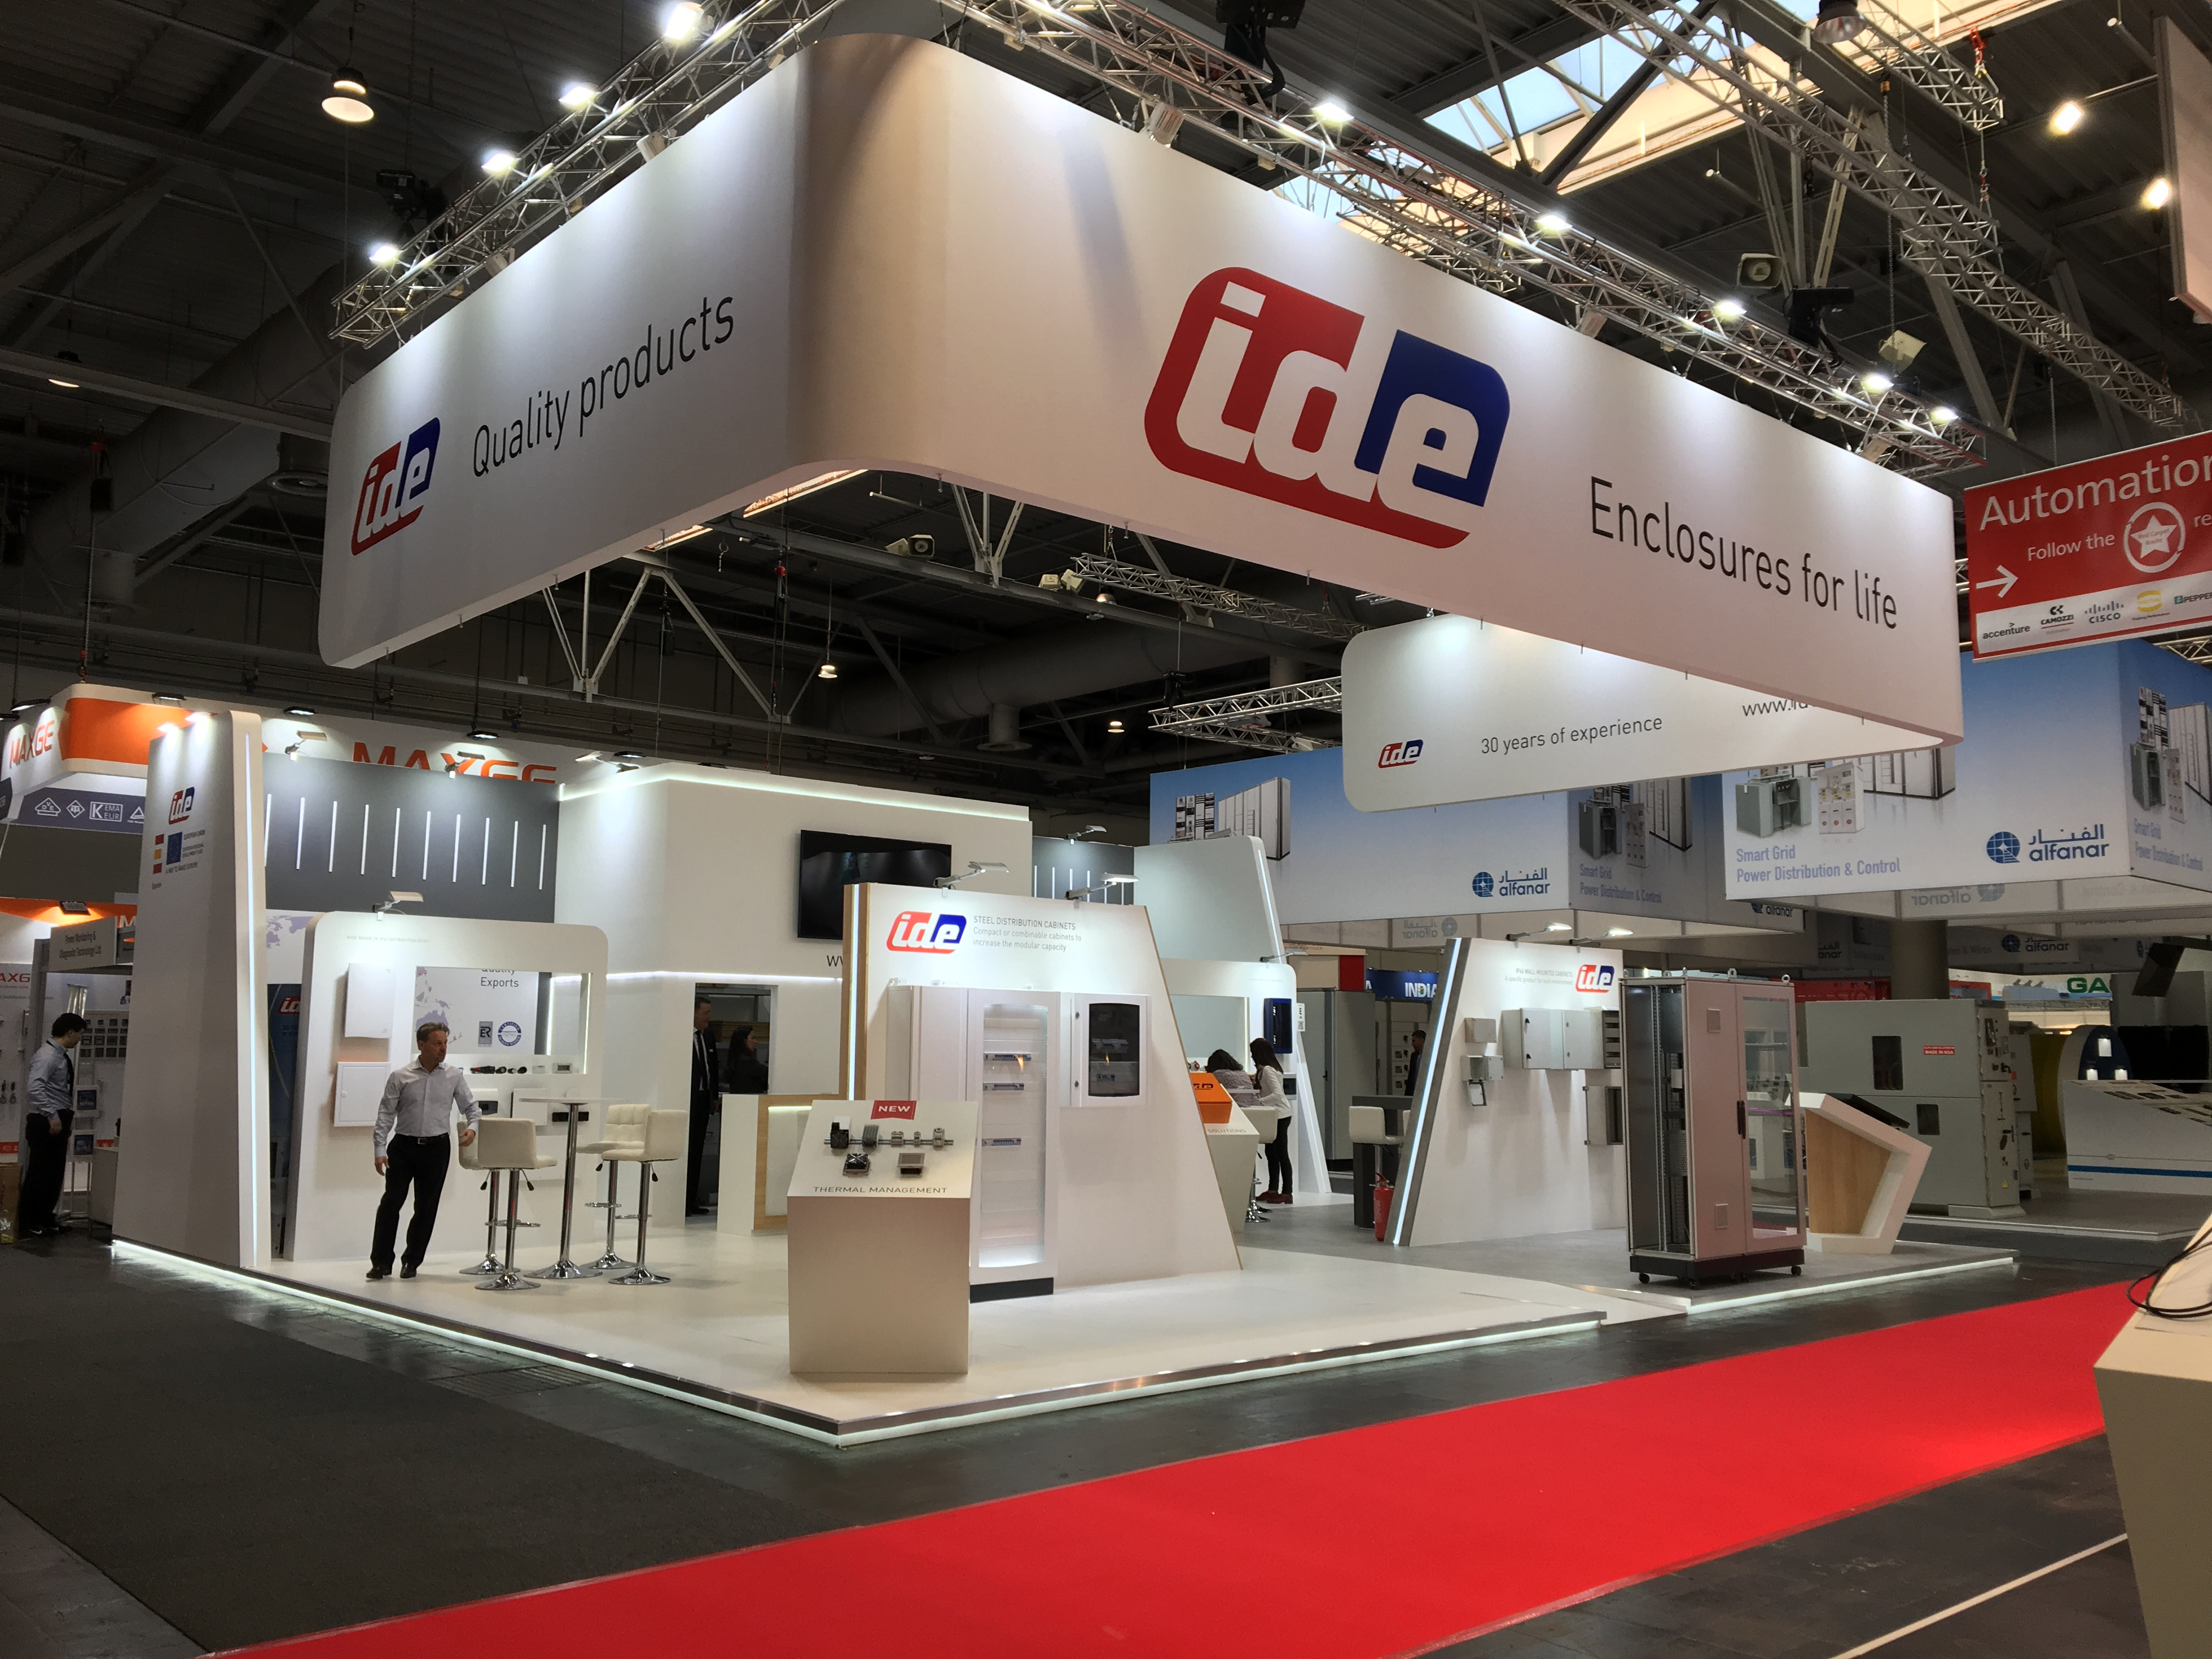 stand-ide-feria-hannover-messe-2019-01